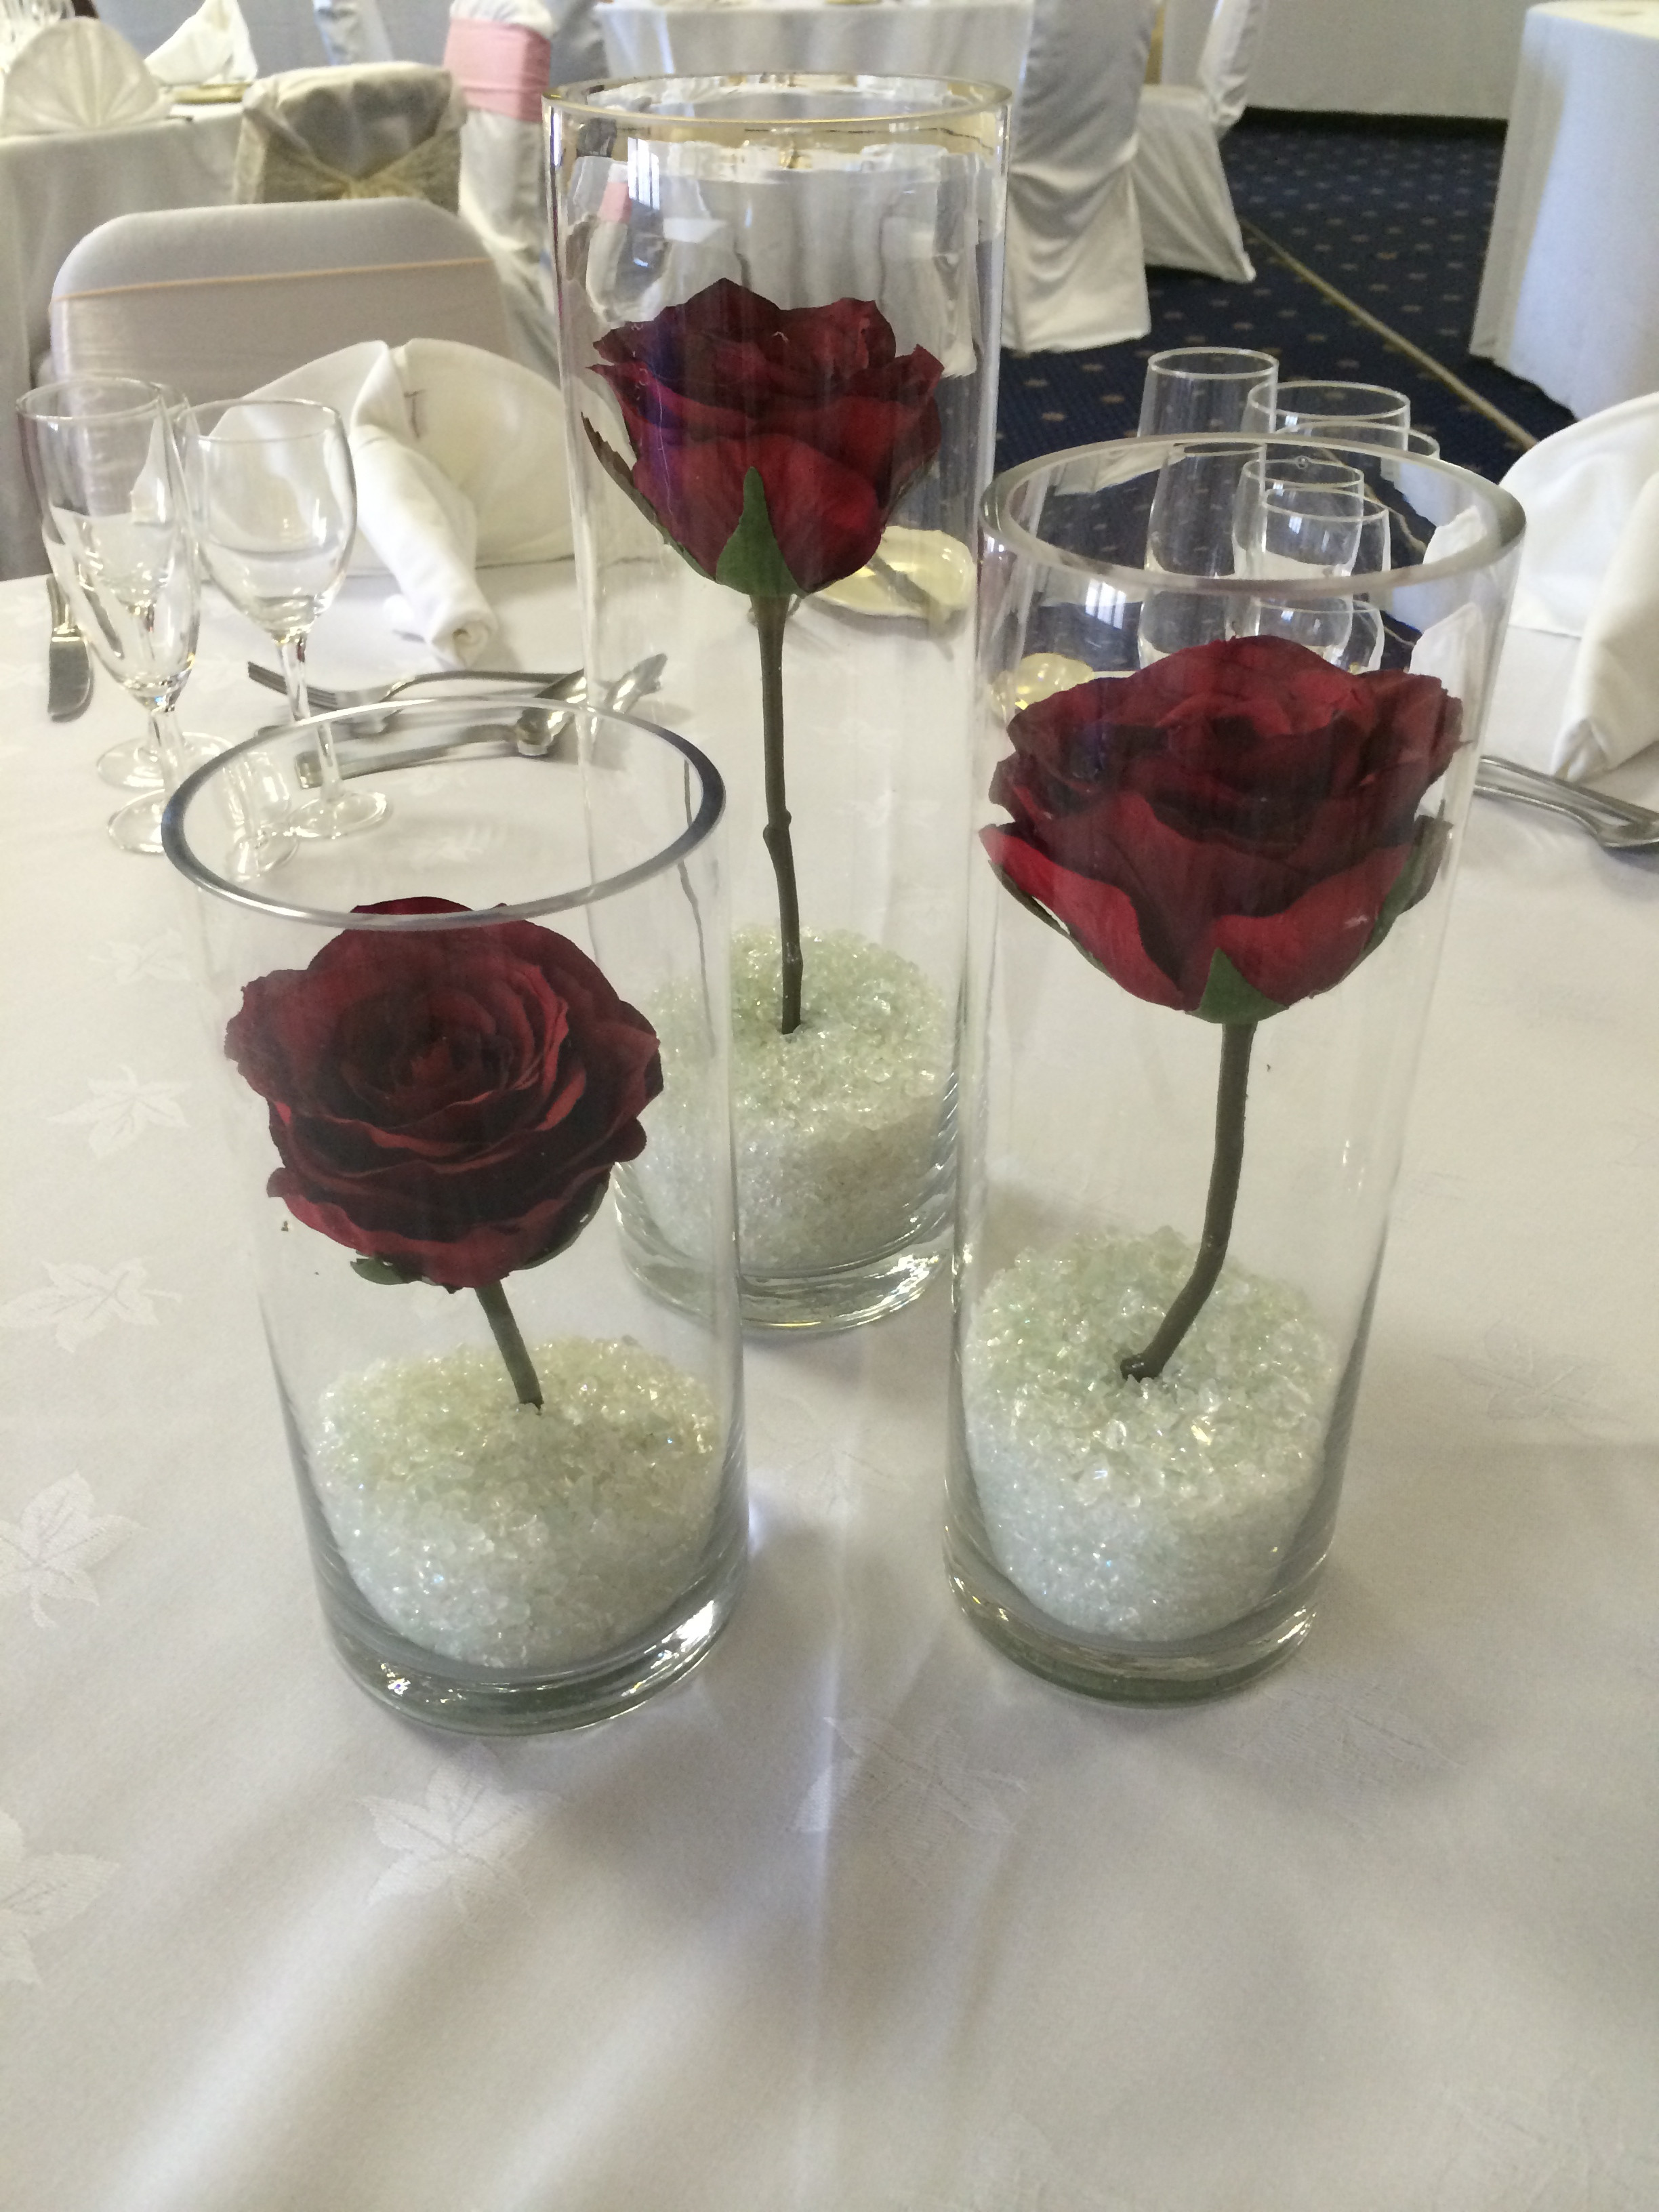 Tall Vase Table Decorations Of Chair Table Vase Decorations Flower Small Square Cylinder Crystal with Chair Marvelous Table Vase Decorations 0 Cylinder Red Rose Table Vase Decorations